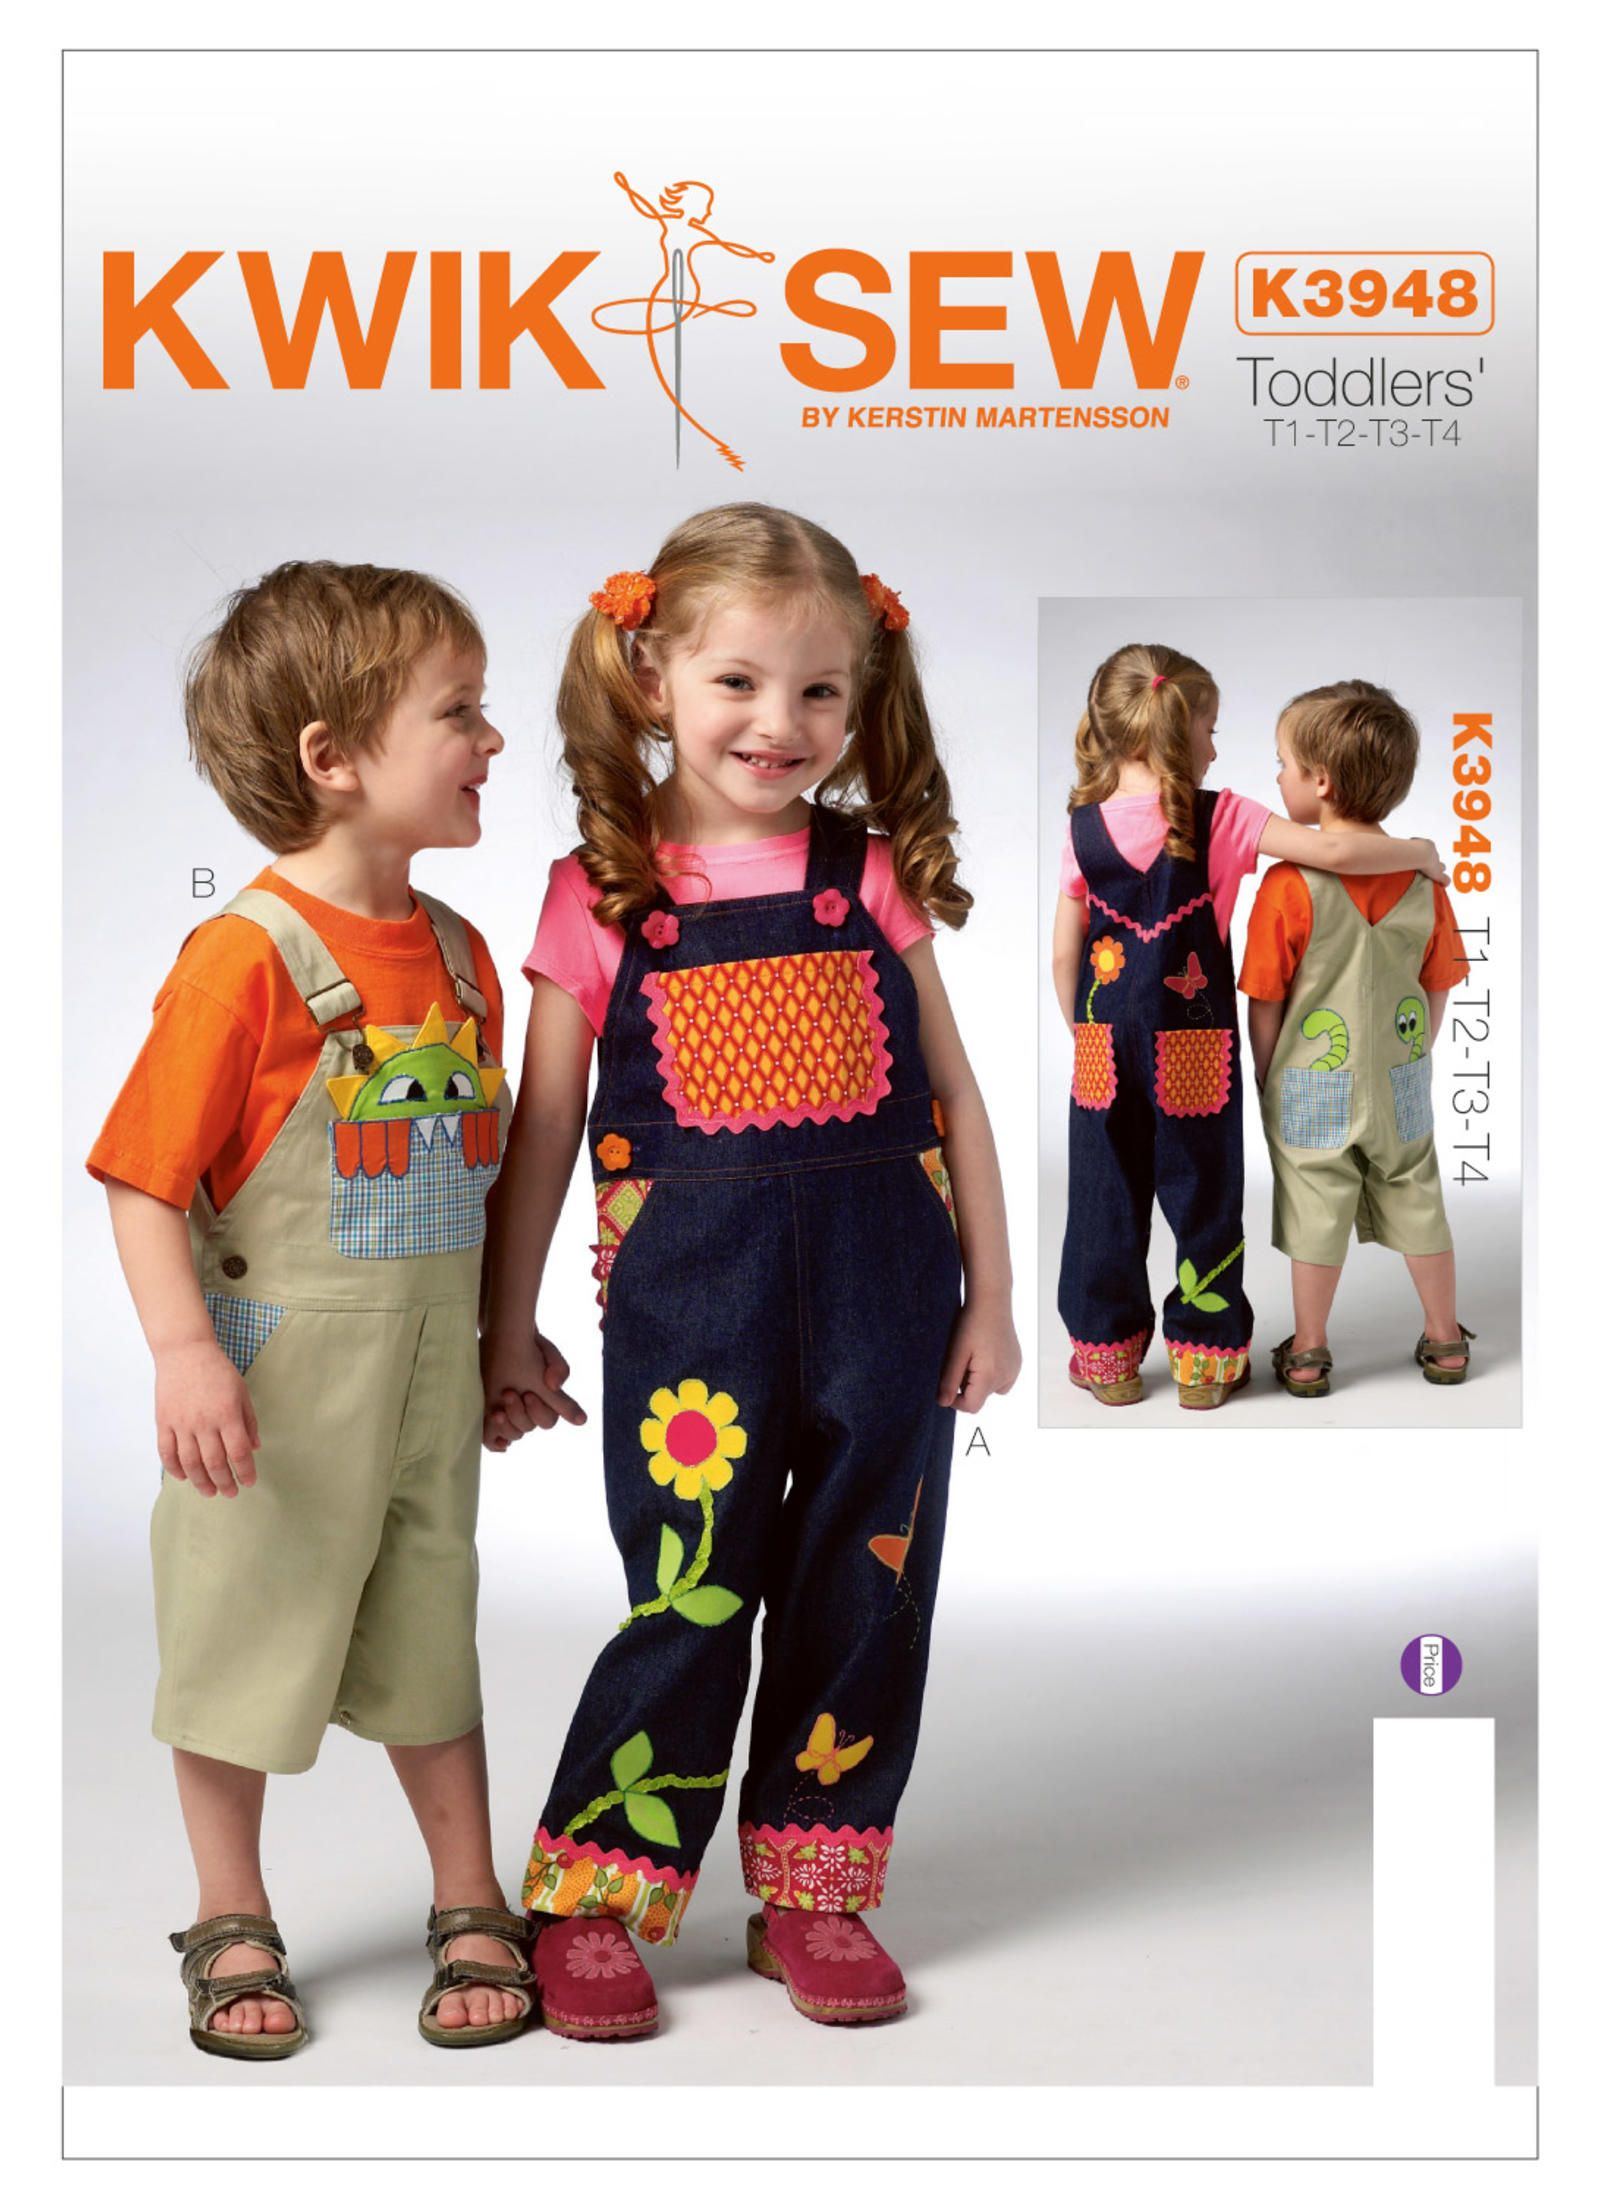 K3948 | Kwik Sew Patterns | For MuMu | Pinterest